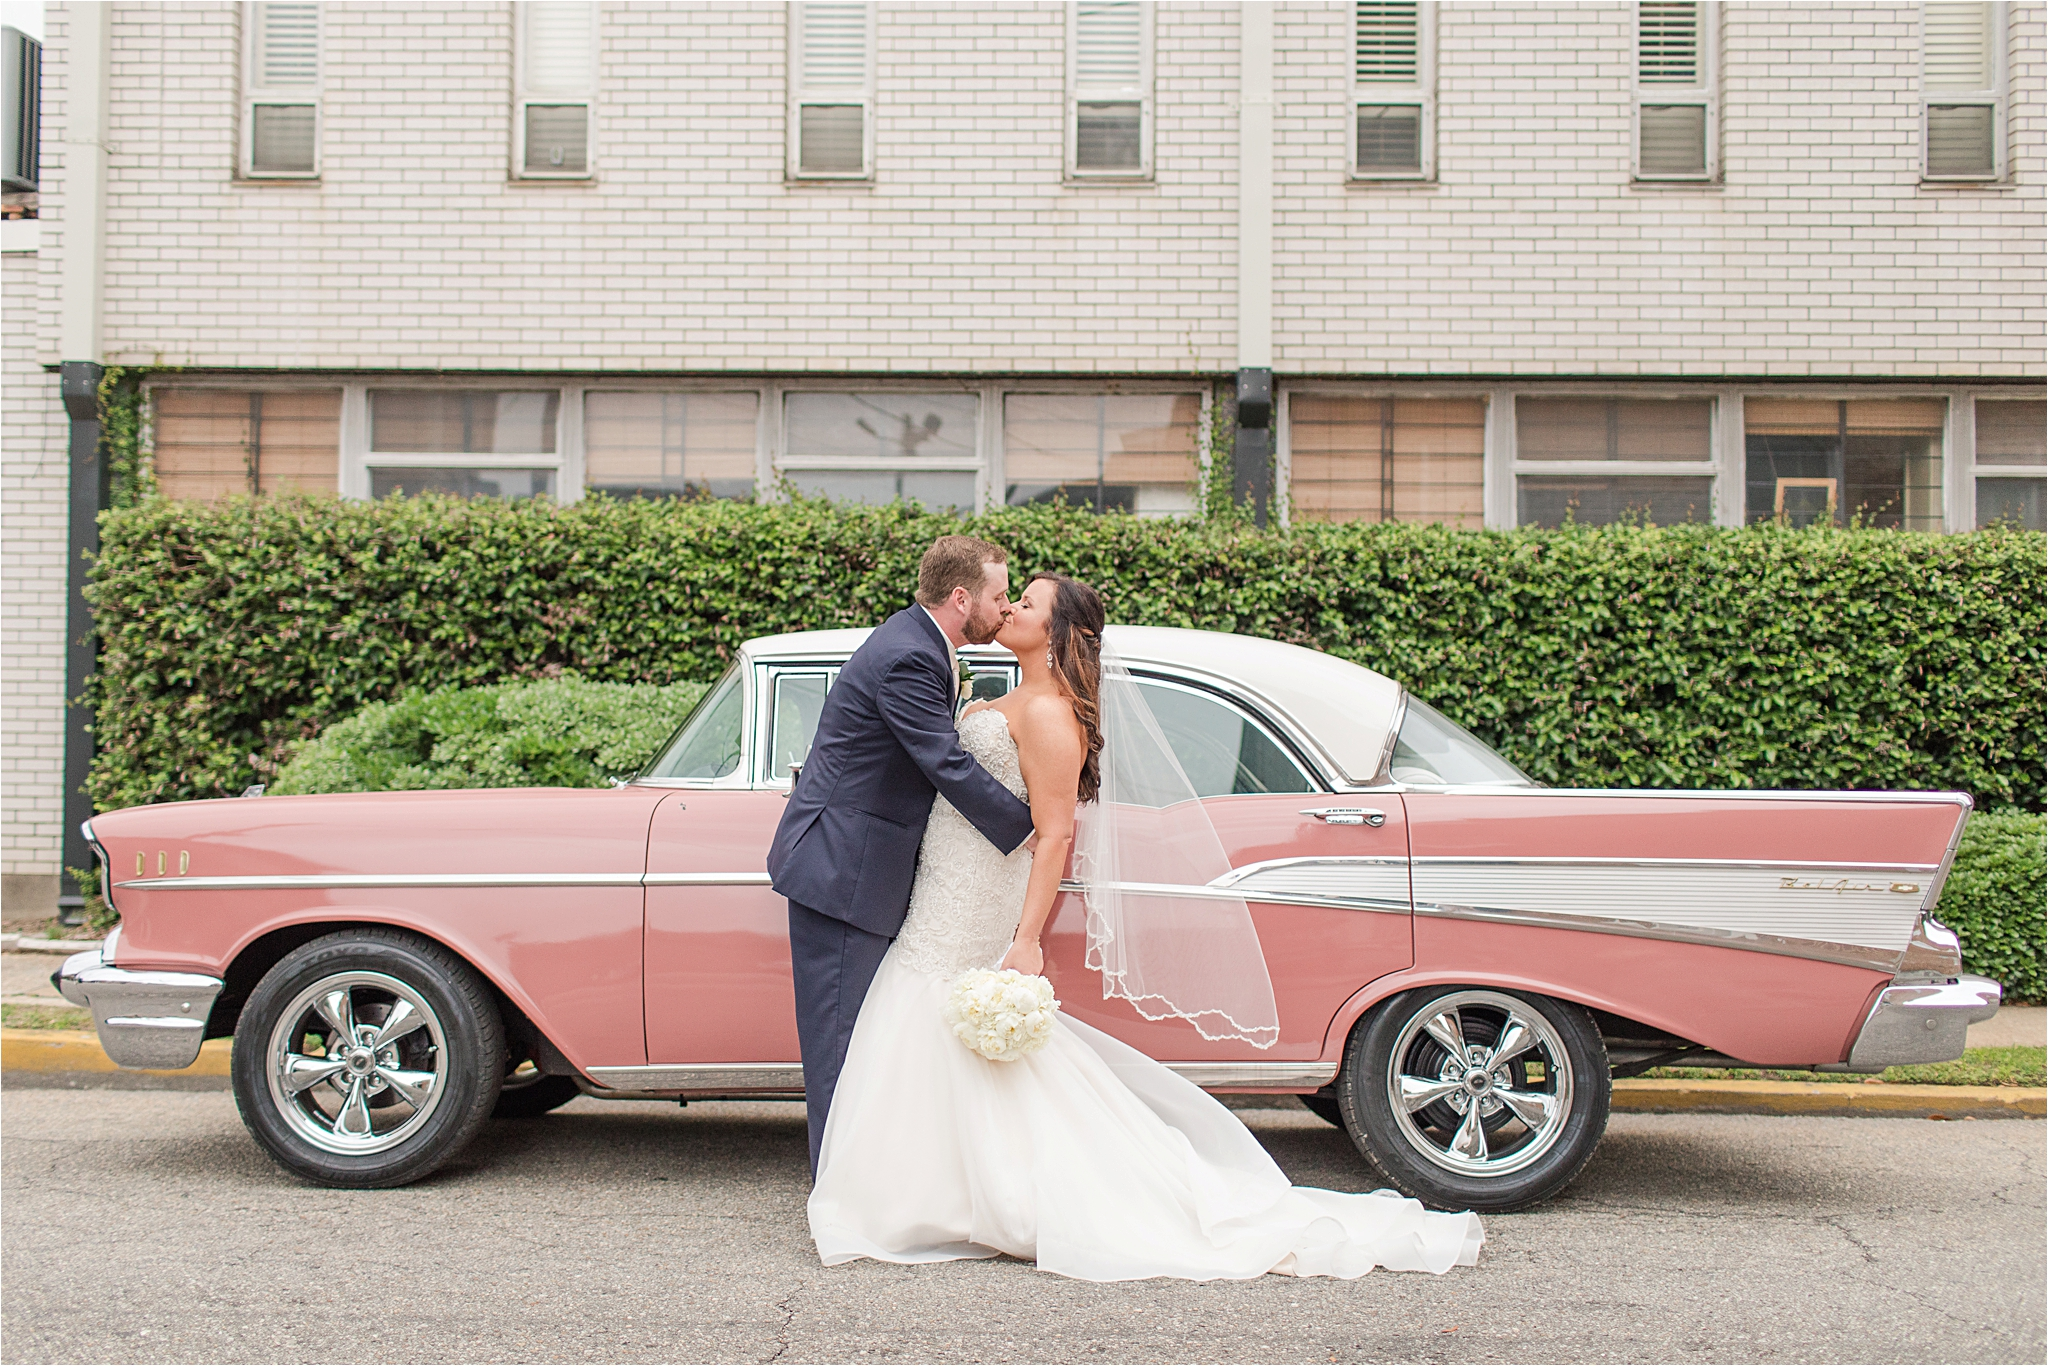 old fashion pink cadillac-just married-getaway car-mermaid cut dress-white rose bouquet-convertible cadillac-coral-pink-mauve-blush-terra cotta